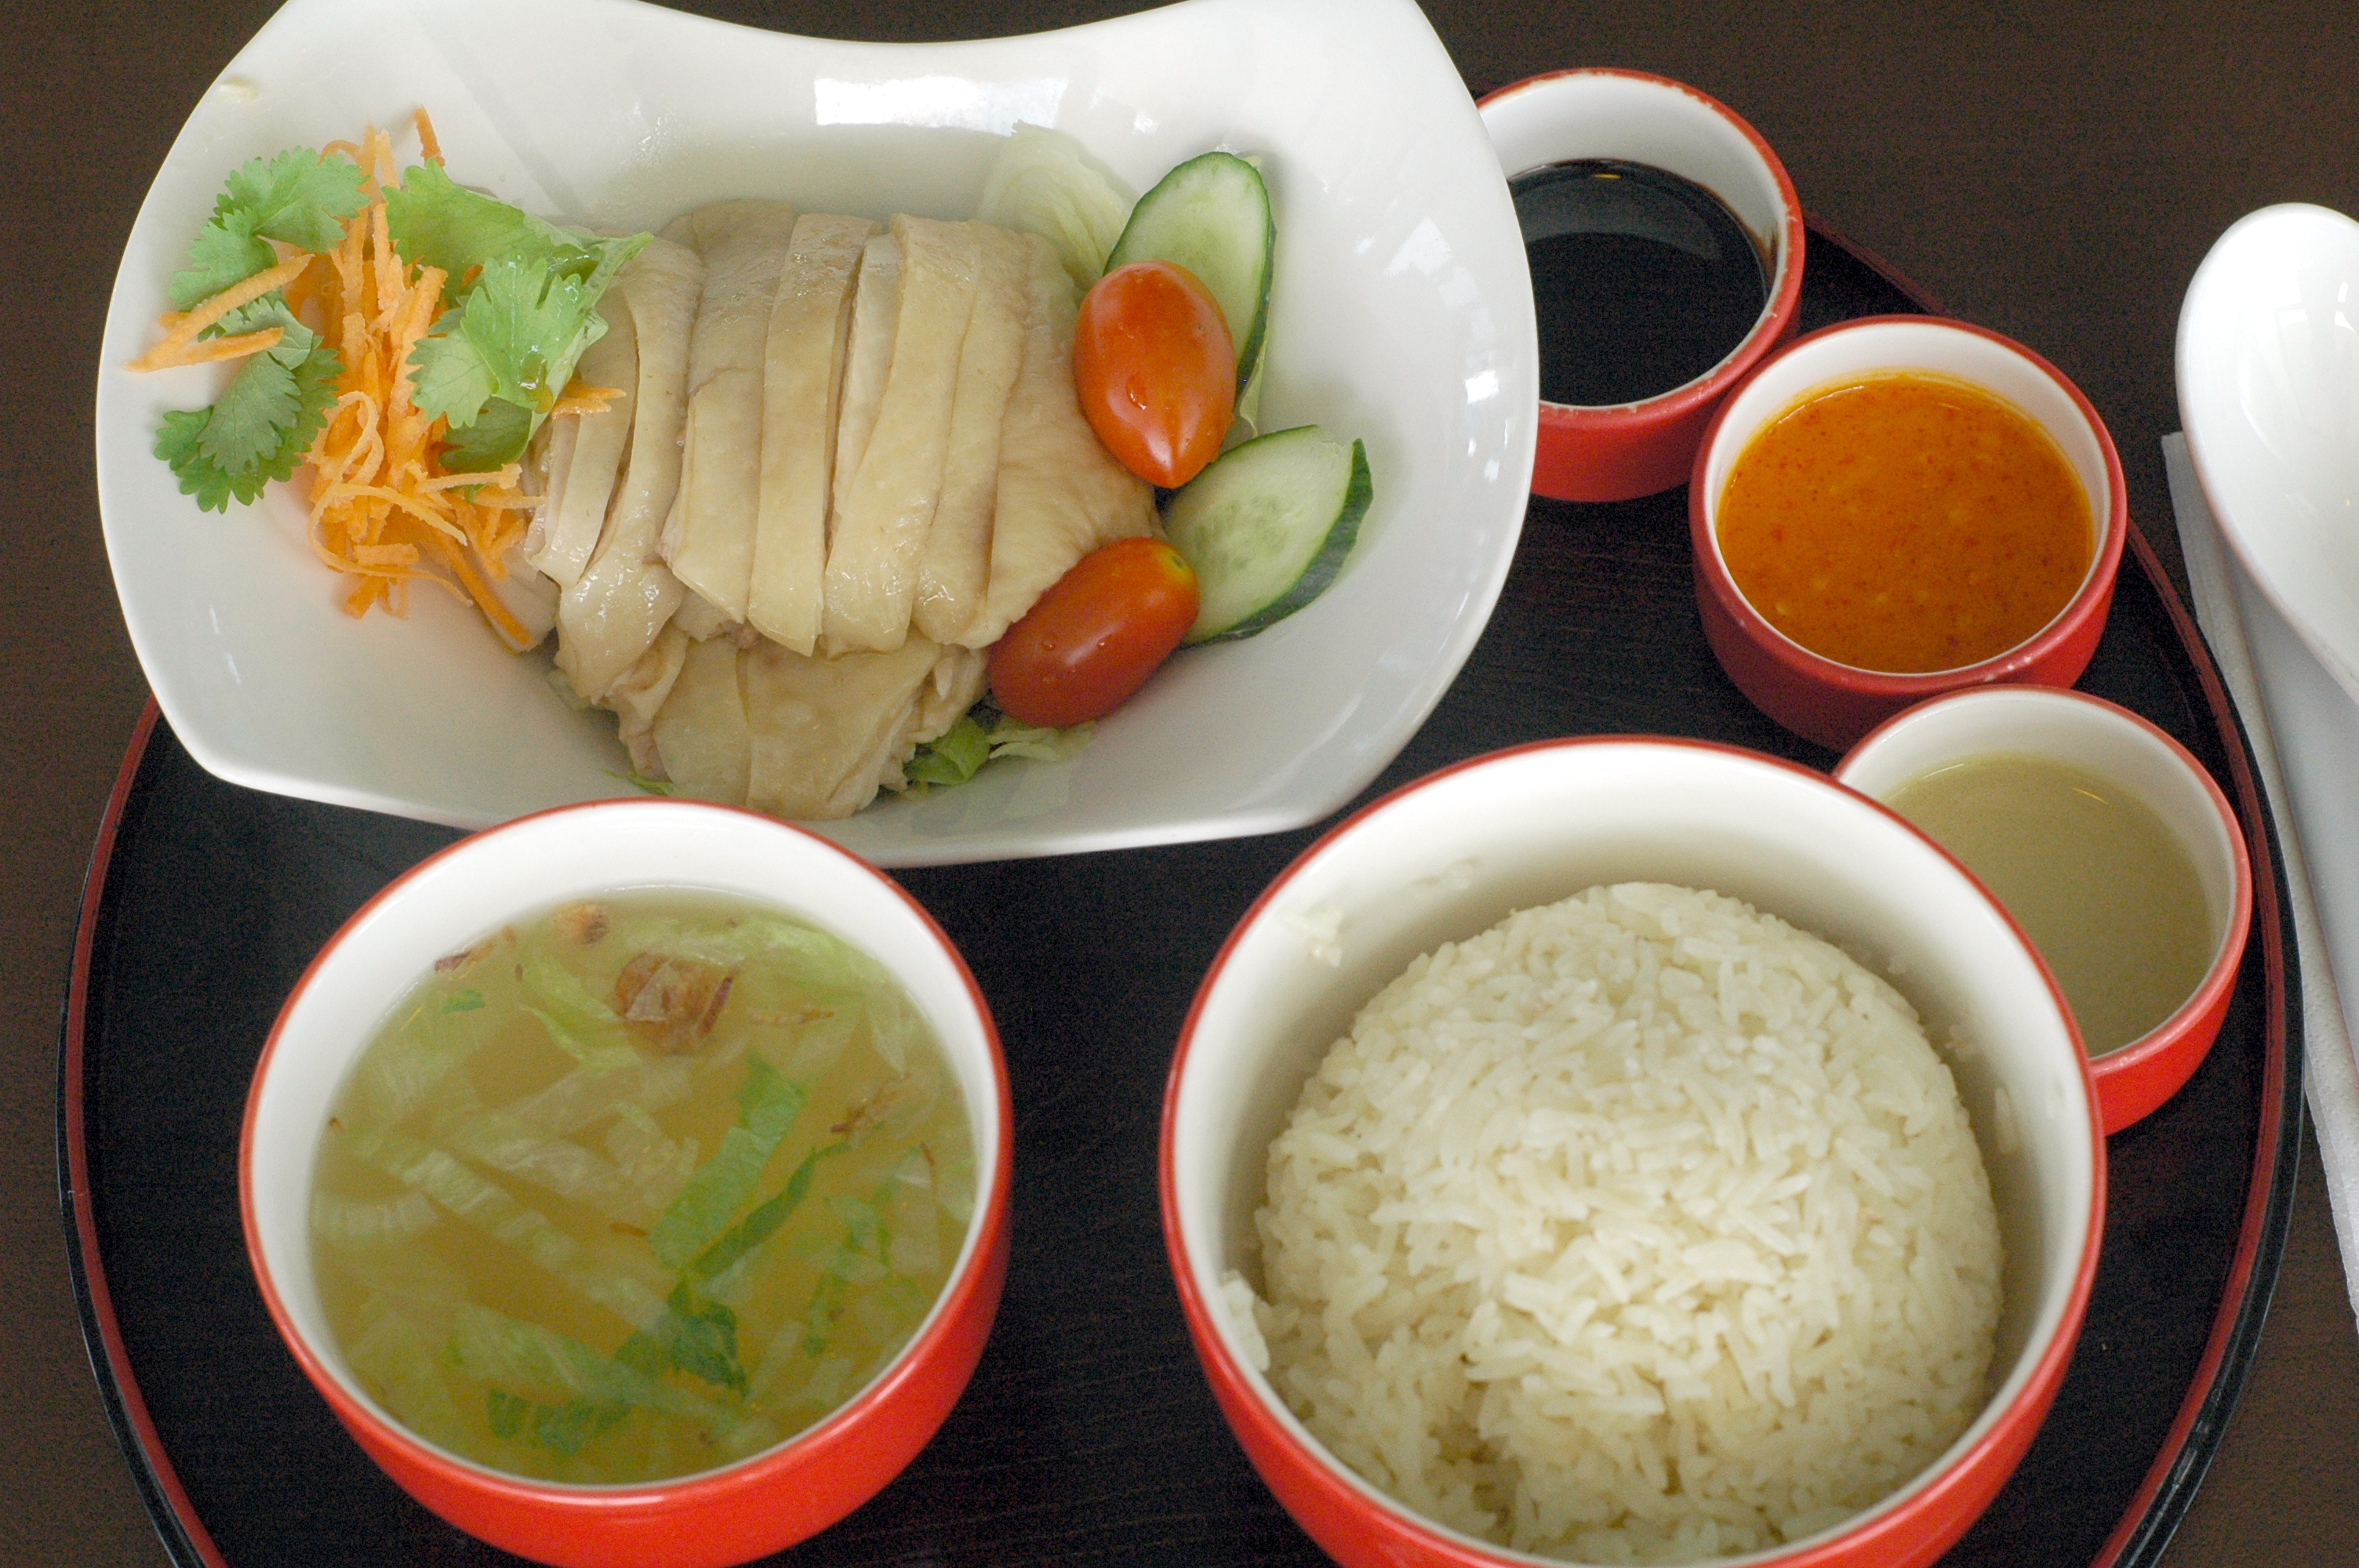 File:Chatterbox ChickenRice.JPG - Wikimedia Commons